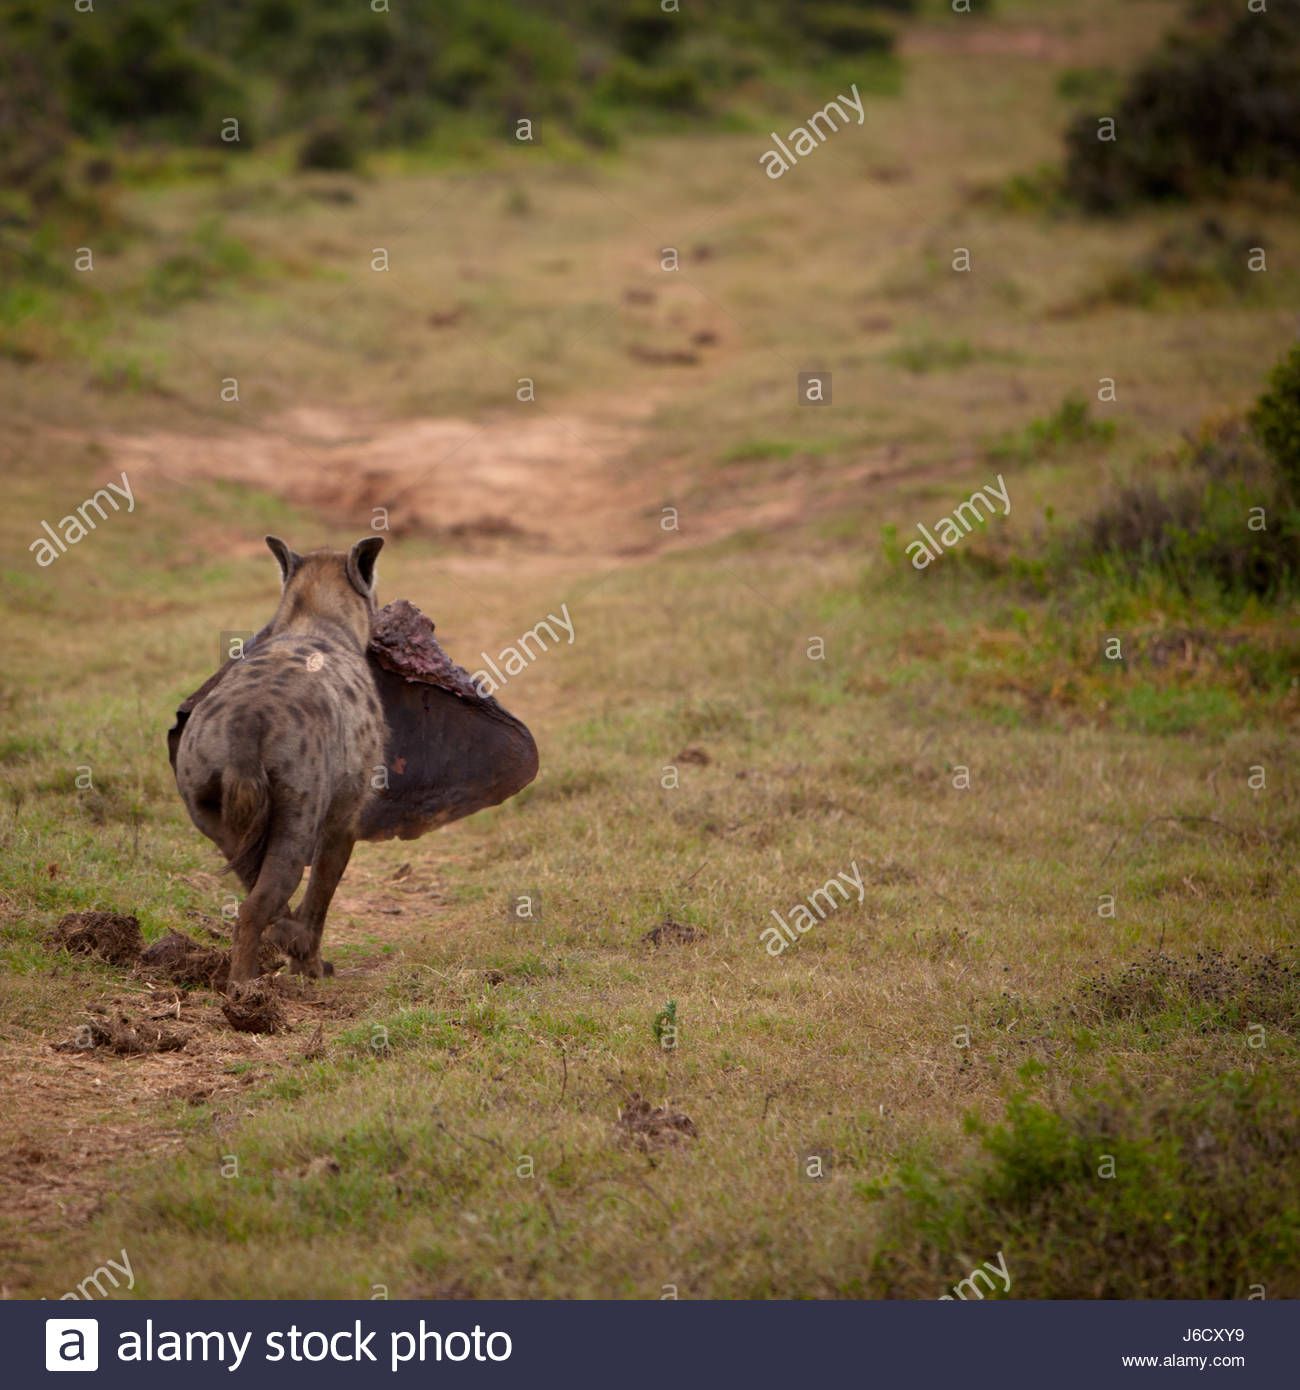 Hyena in the wild with elephant ear carrion in South Africa - Stock Image